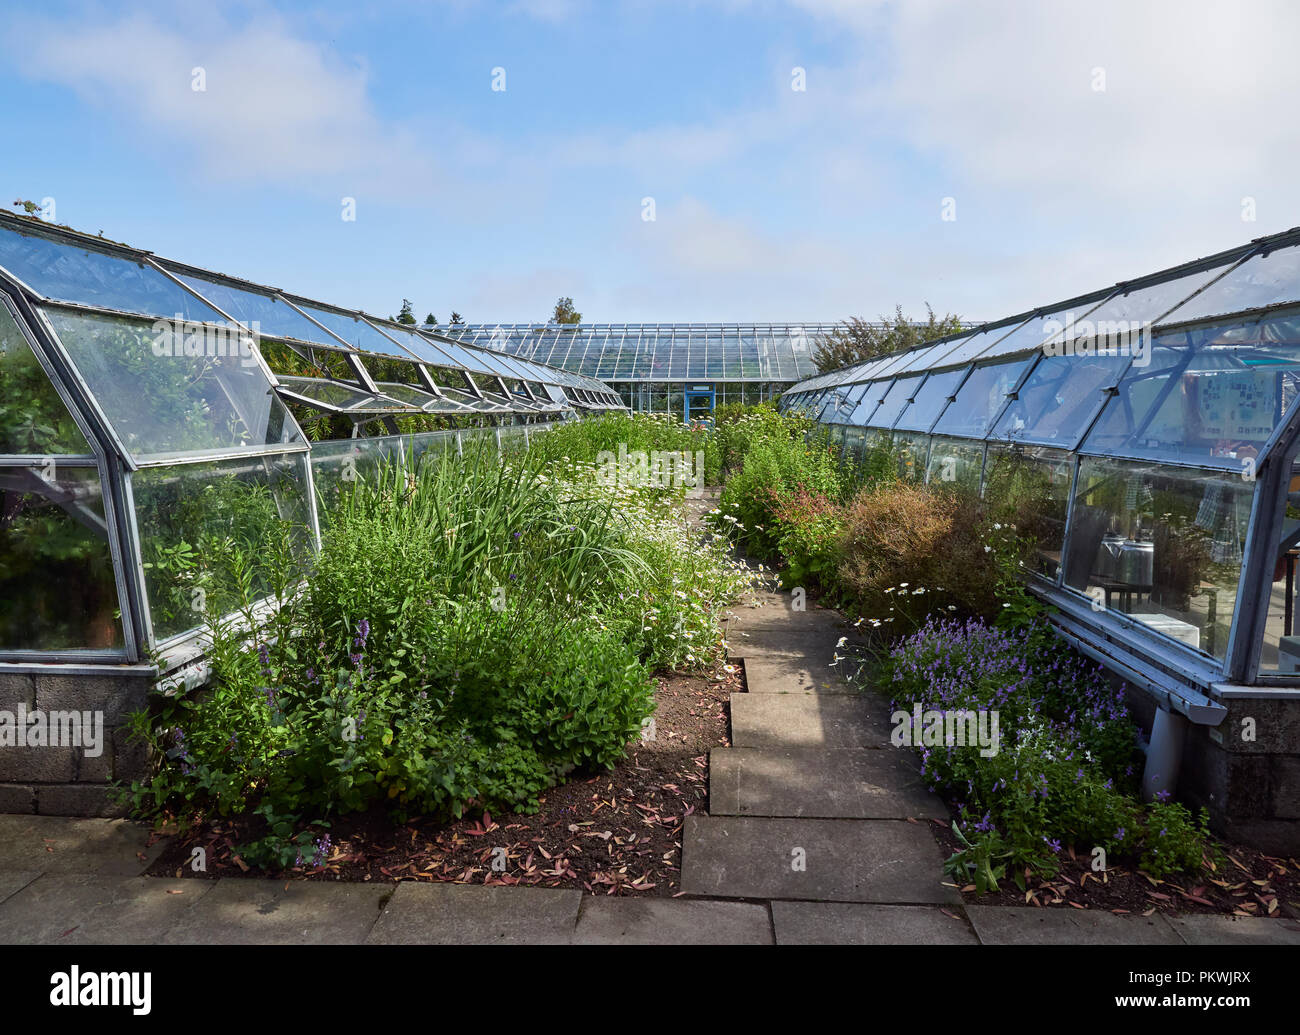 Looking between the rows of Glasshouses at the Saint Andrews Botanic Gardens Mediterranean exhibition of Plants, in St Andrews, Fife in Scotland. - Stock Image